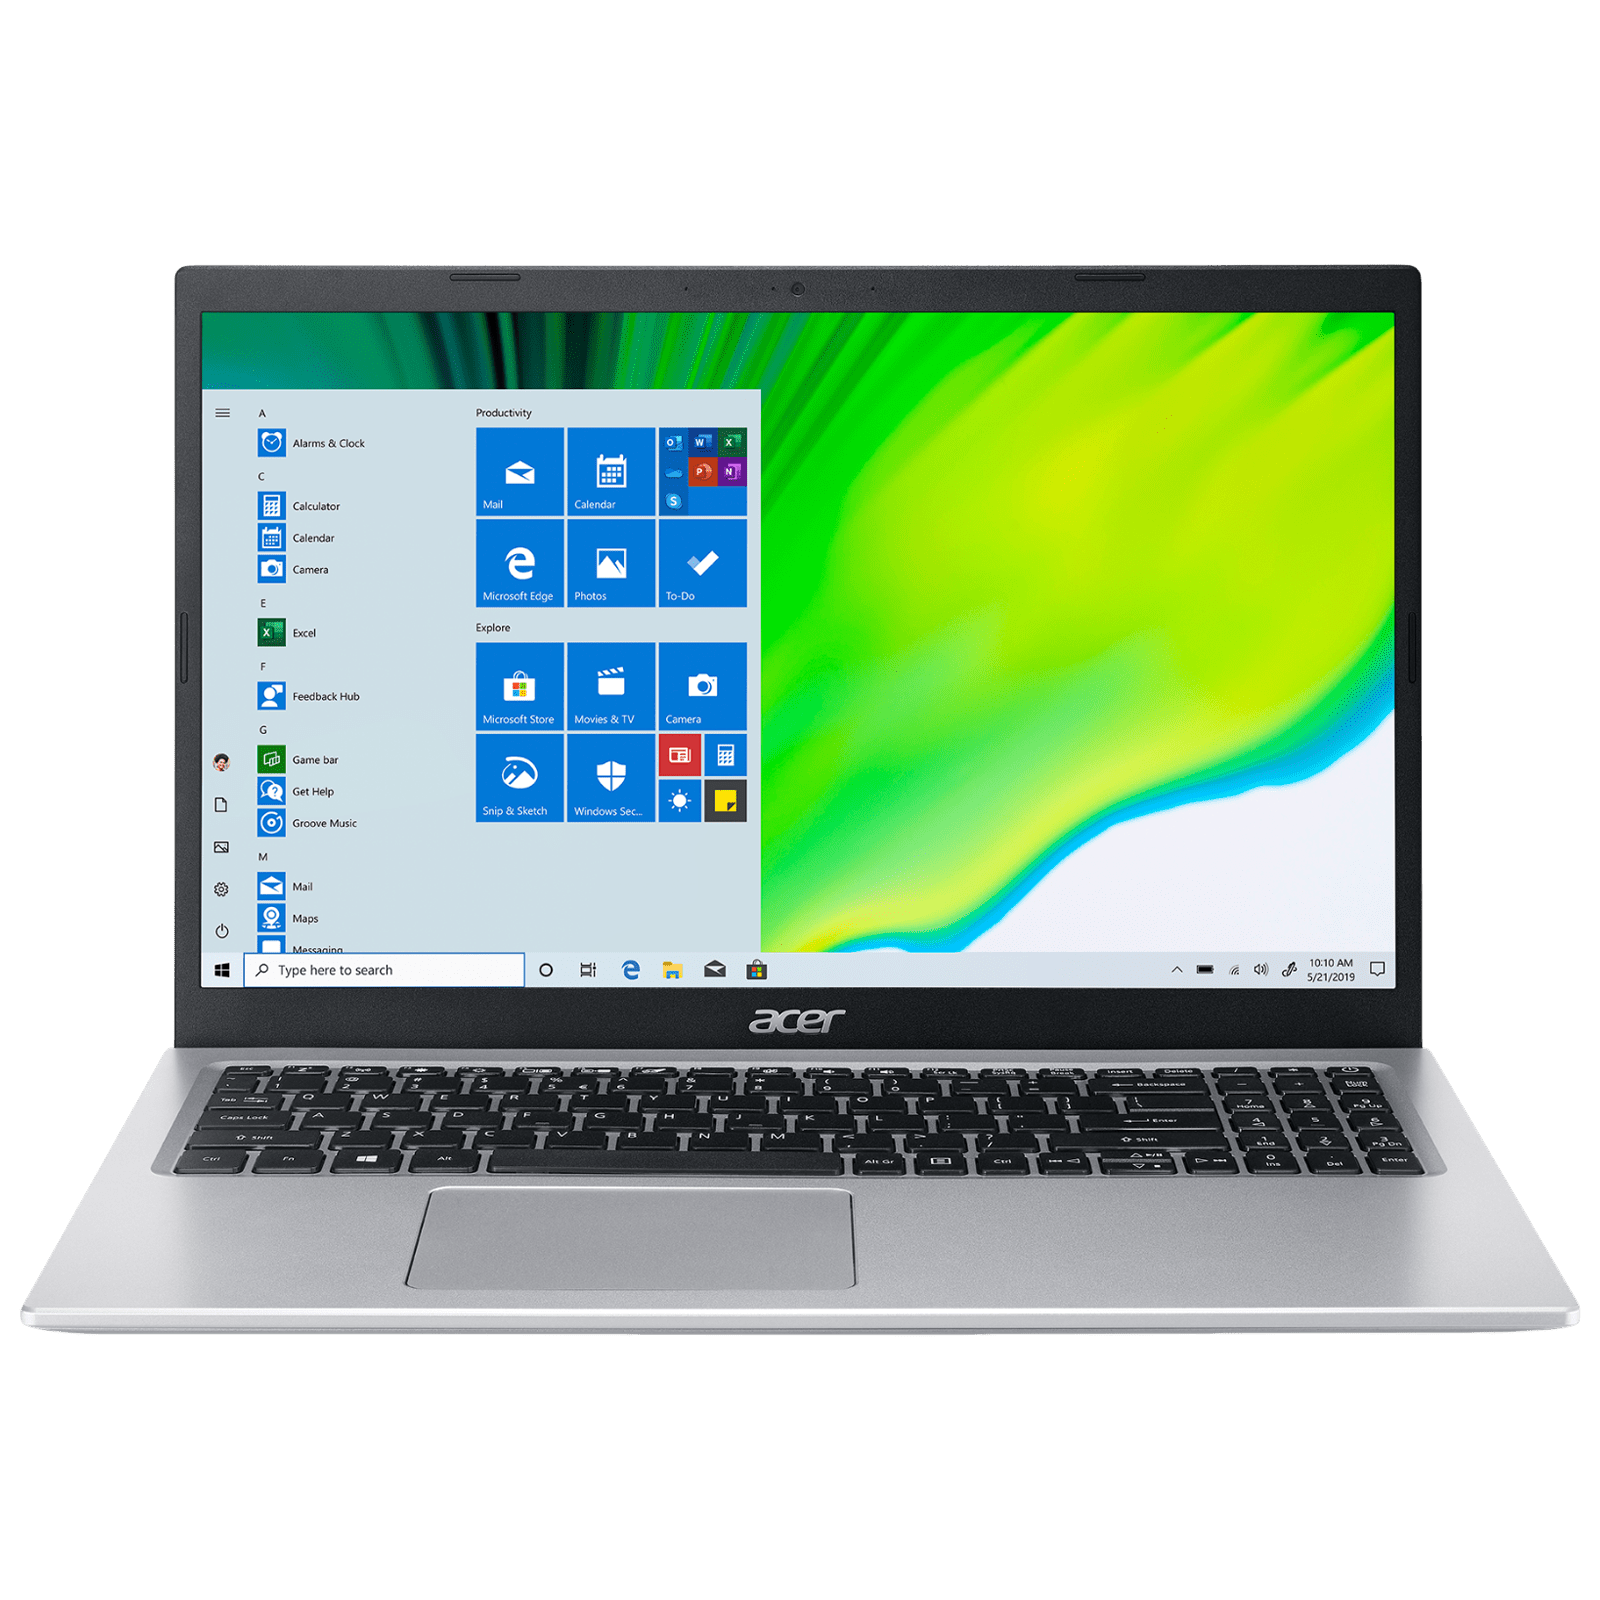 Acer Aspire 5 A515-56 (UN.A1GSI.004) Core i3 11th Gen Windows 10 Home Thin and Light Laptop (4GB RAM, 1TB HDD, Intel UHD Graphics, MS Office, 39.62cm, Silver)